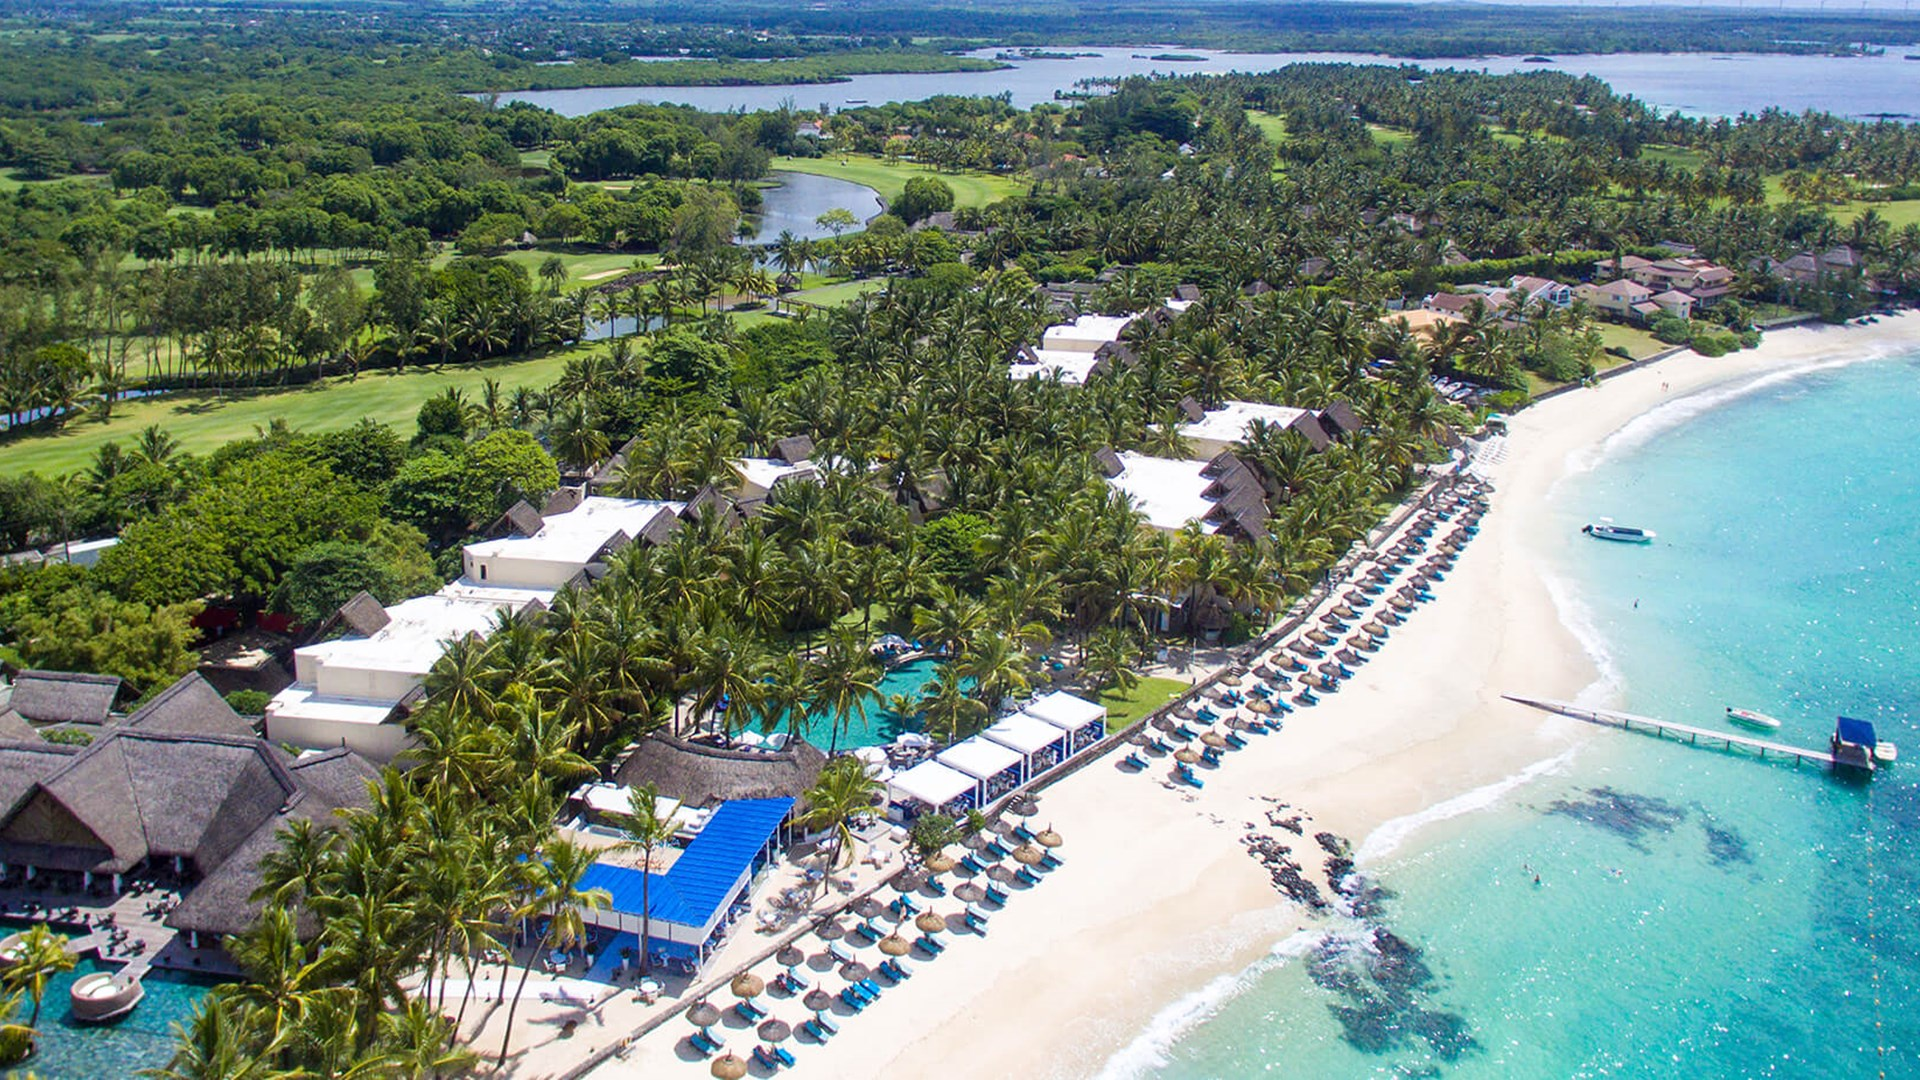 Mauritius to sell citizenship and passports to foreign for Design hotel mauritius